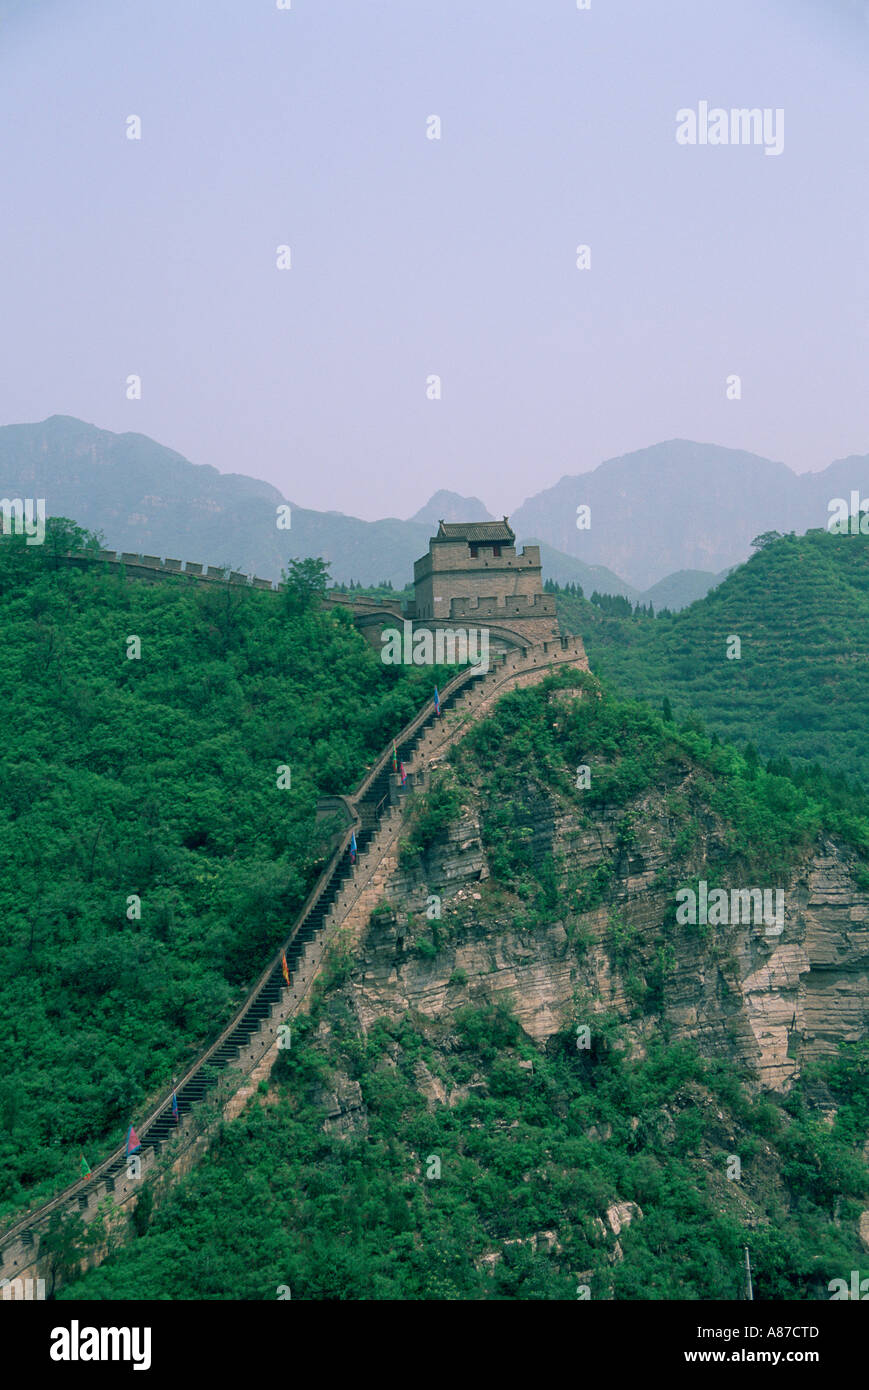 Aerial view of the Great Wall of China in Badaling China - Stock Image